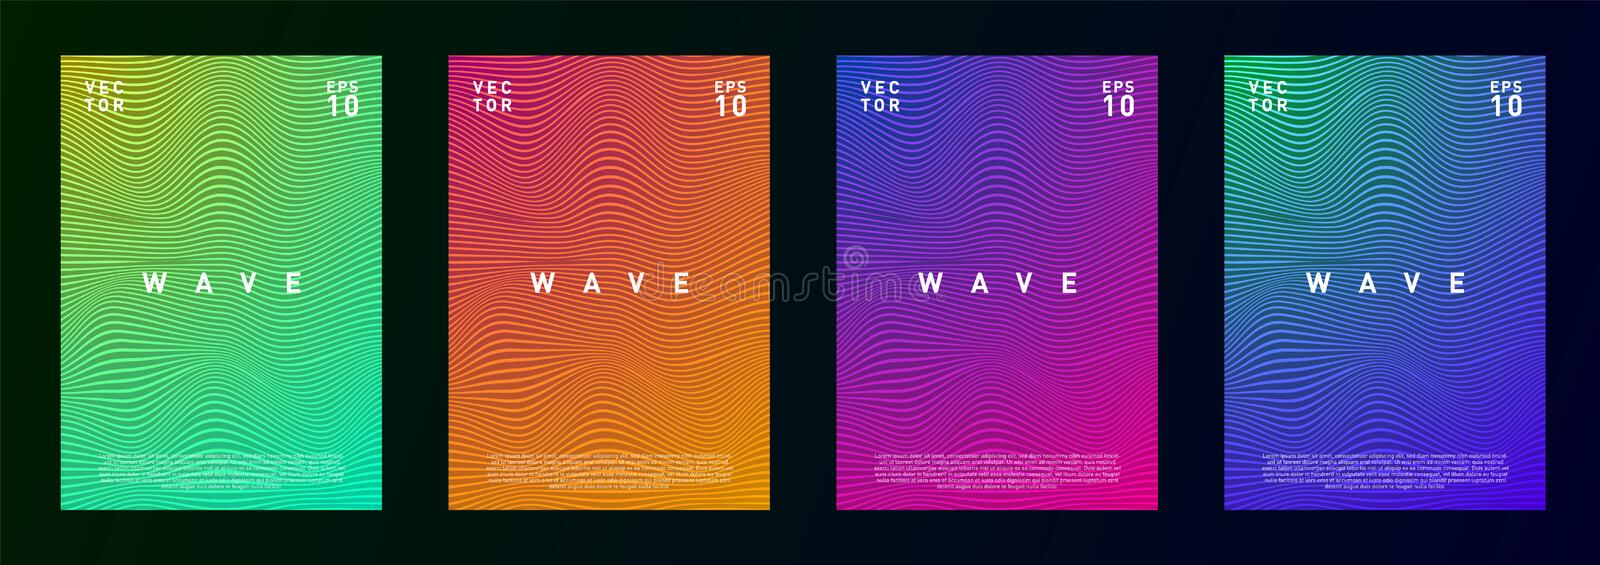 Set of wave lines gradient fluid background design for advertising, journal, flyer, poster, brochure, covers in trendy royalty free illustration